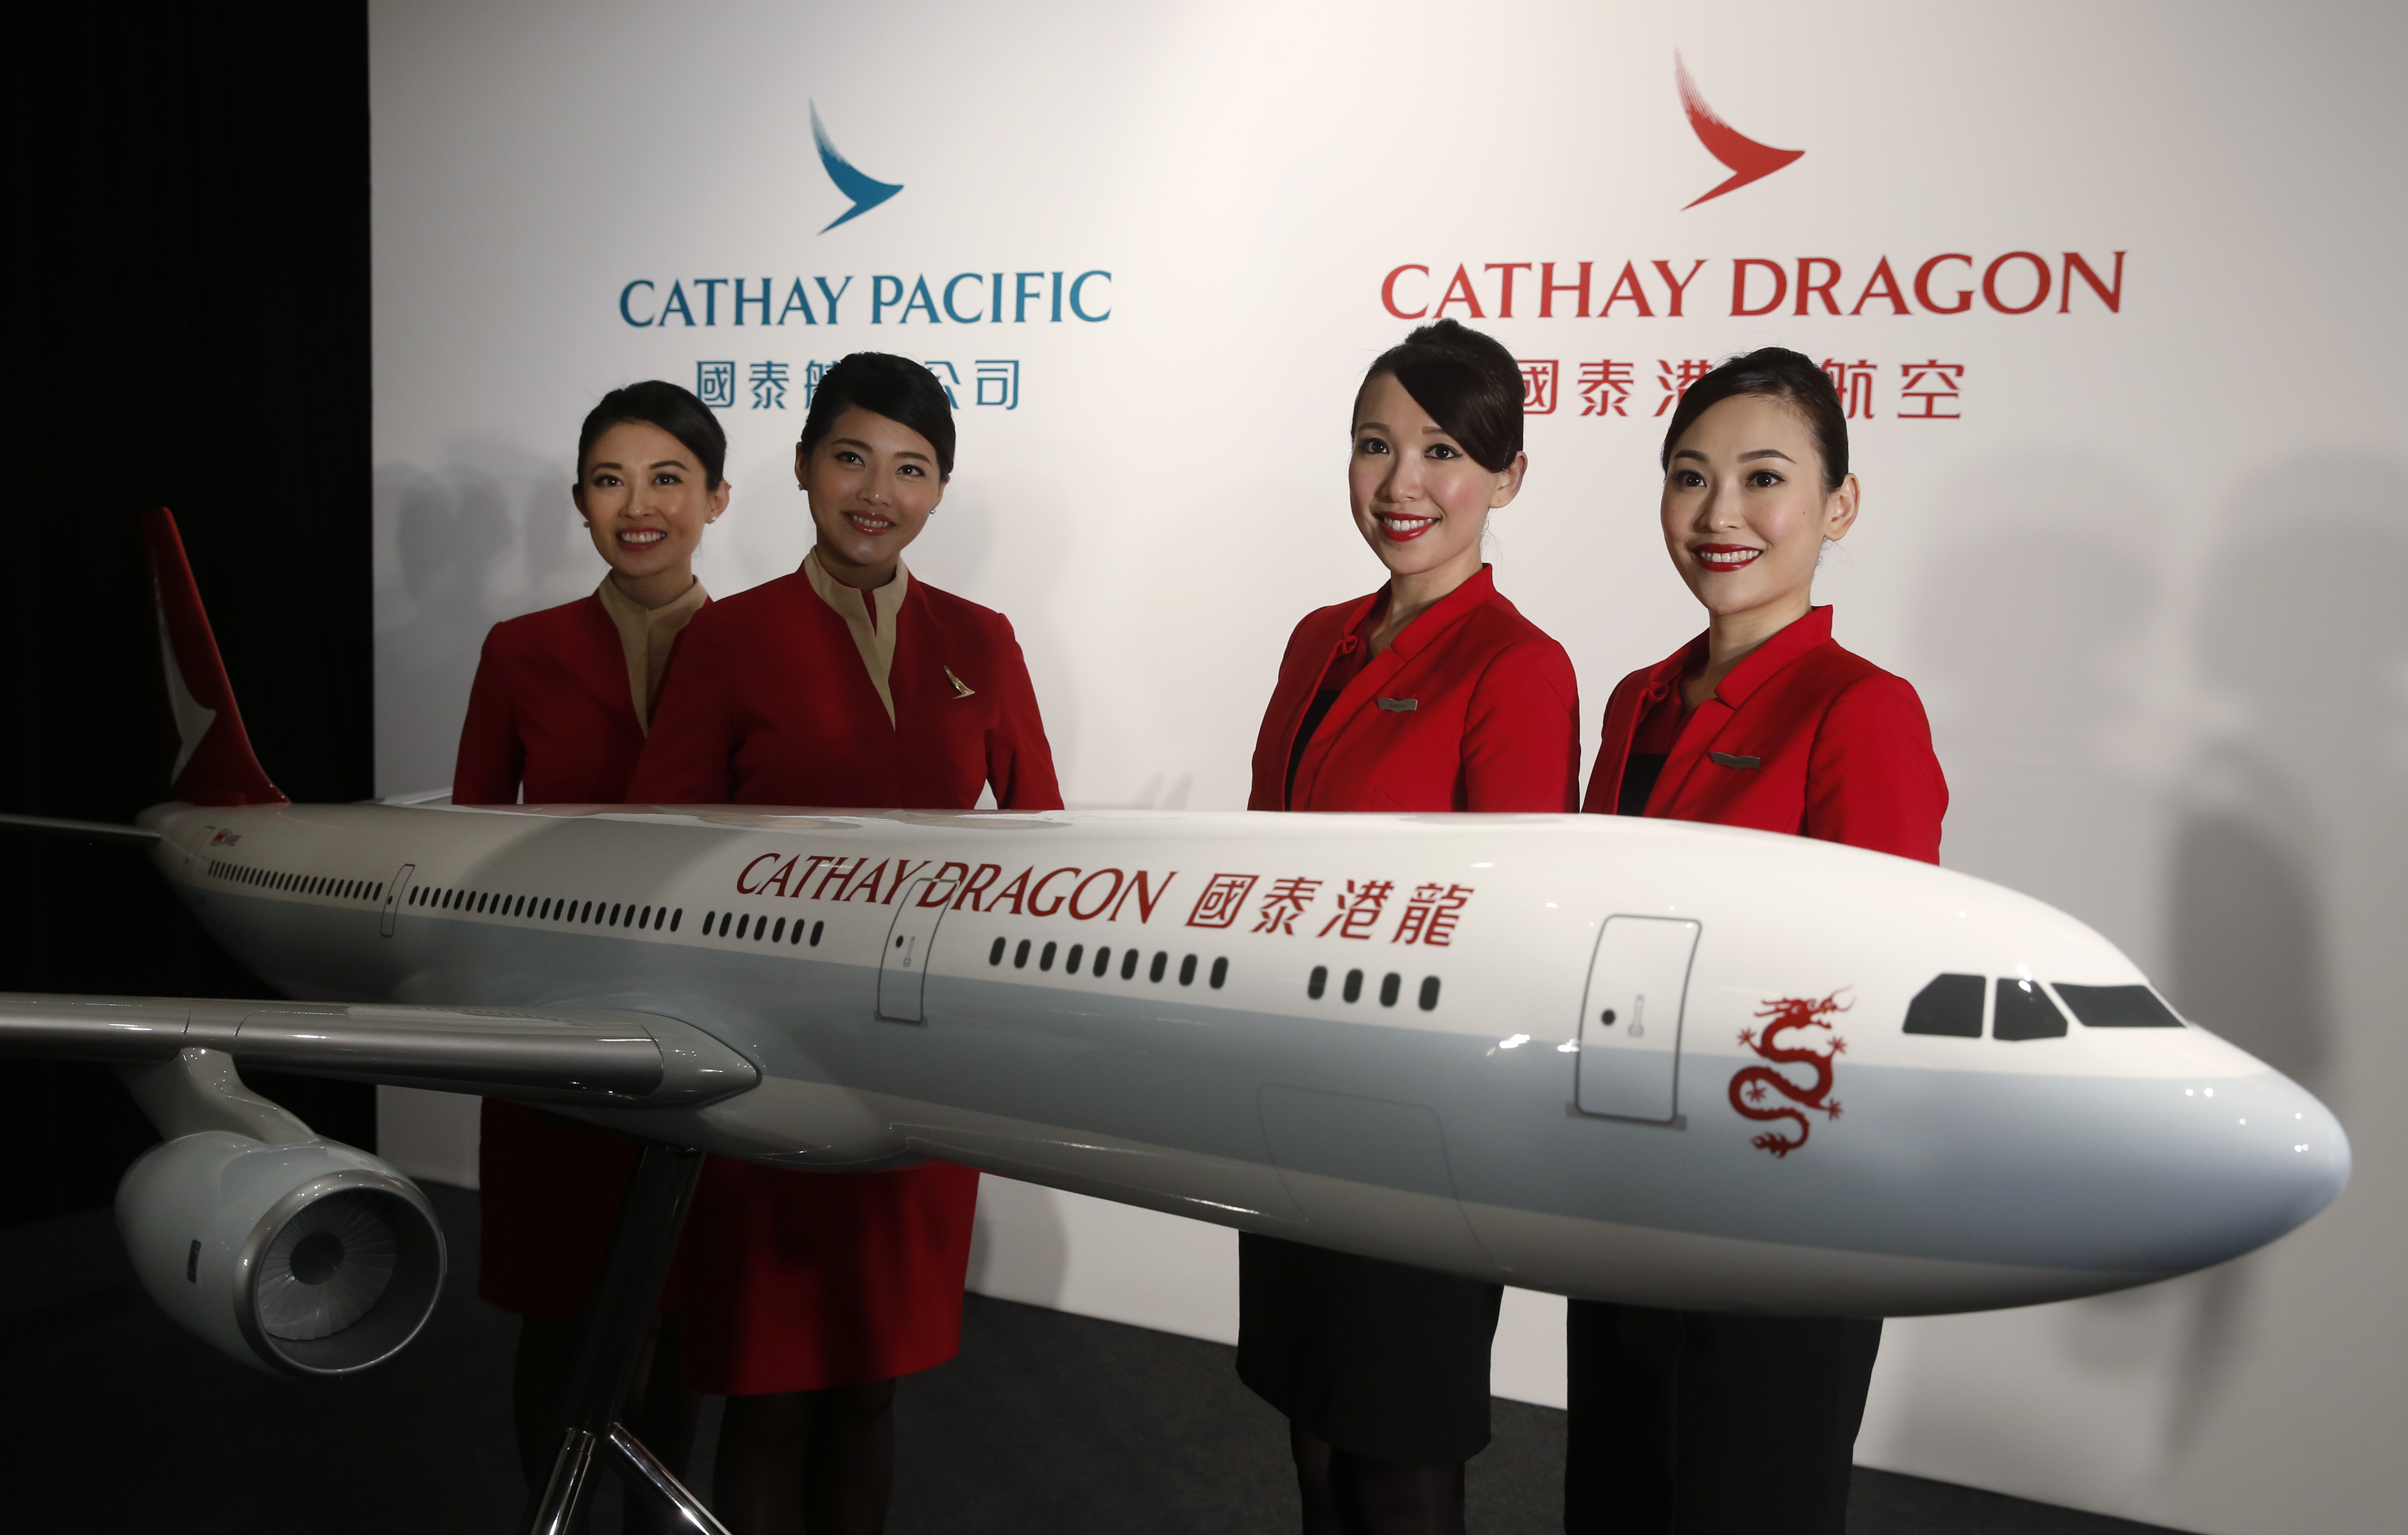 airline and cathay pacific Cathay pacific cargo provide a range of air cargo solutions, including animal, pharmaceutial, secure and dangerous goods - to major cities worldwide.